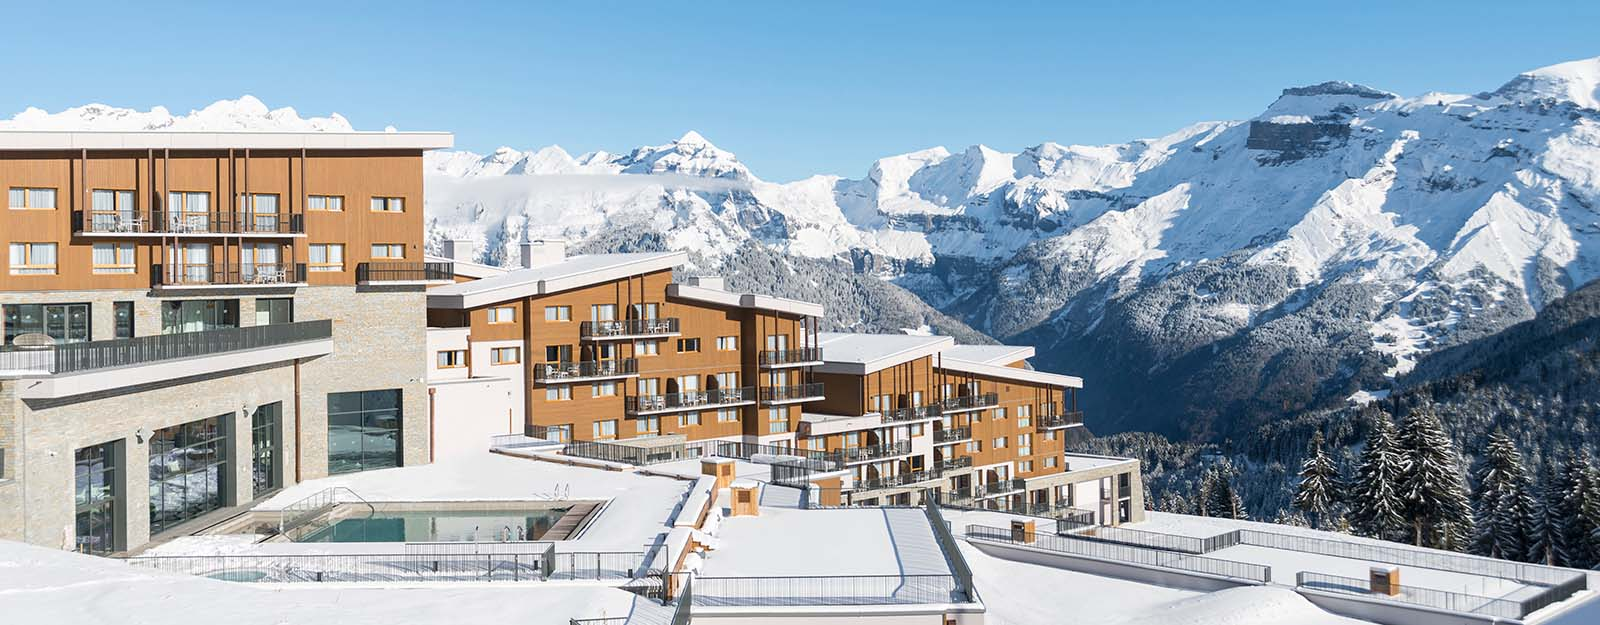 club med all inclusive ski packages, switzerland club med ski packages, club ski packages italy, club med ski packages france, club med ski packages alps, club med ski packages japan, club med ski packages chamonix, club med ski packages dolomites